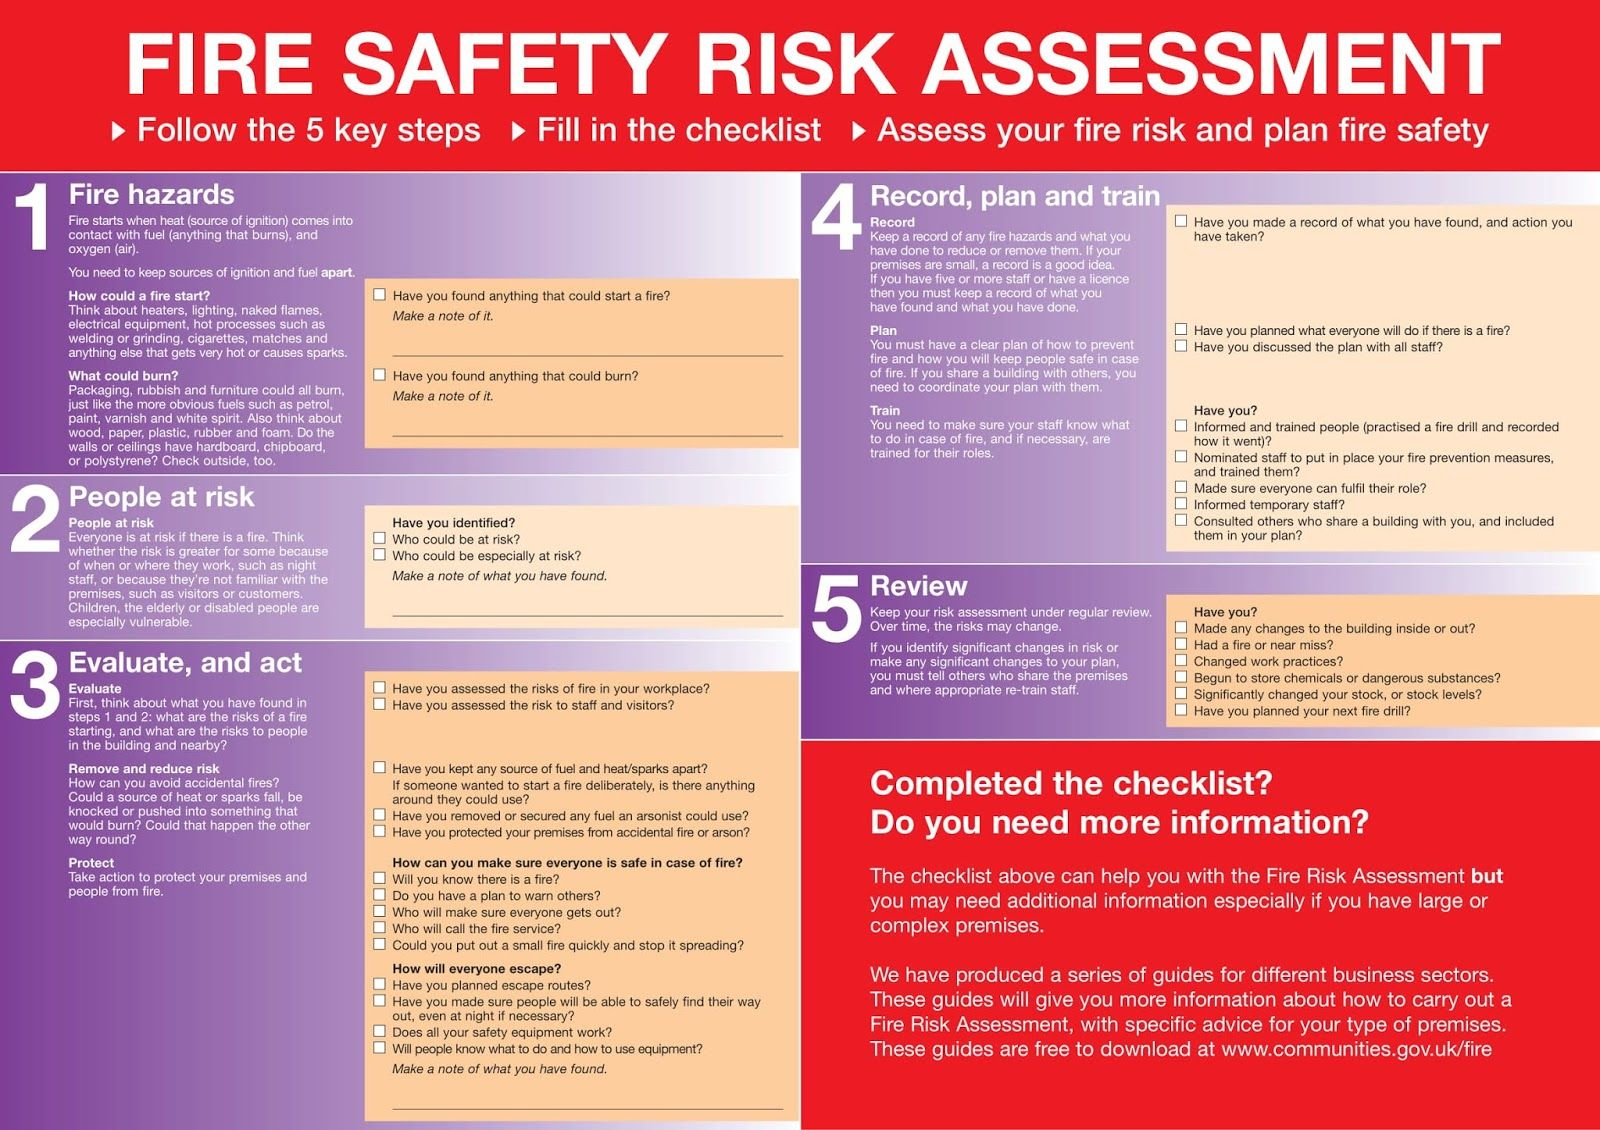 5 Steps for Assess your Fire Risk and plan Fire Safety